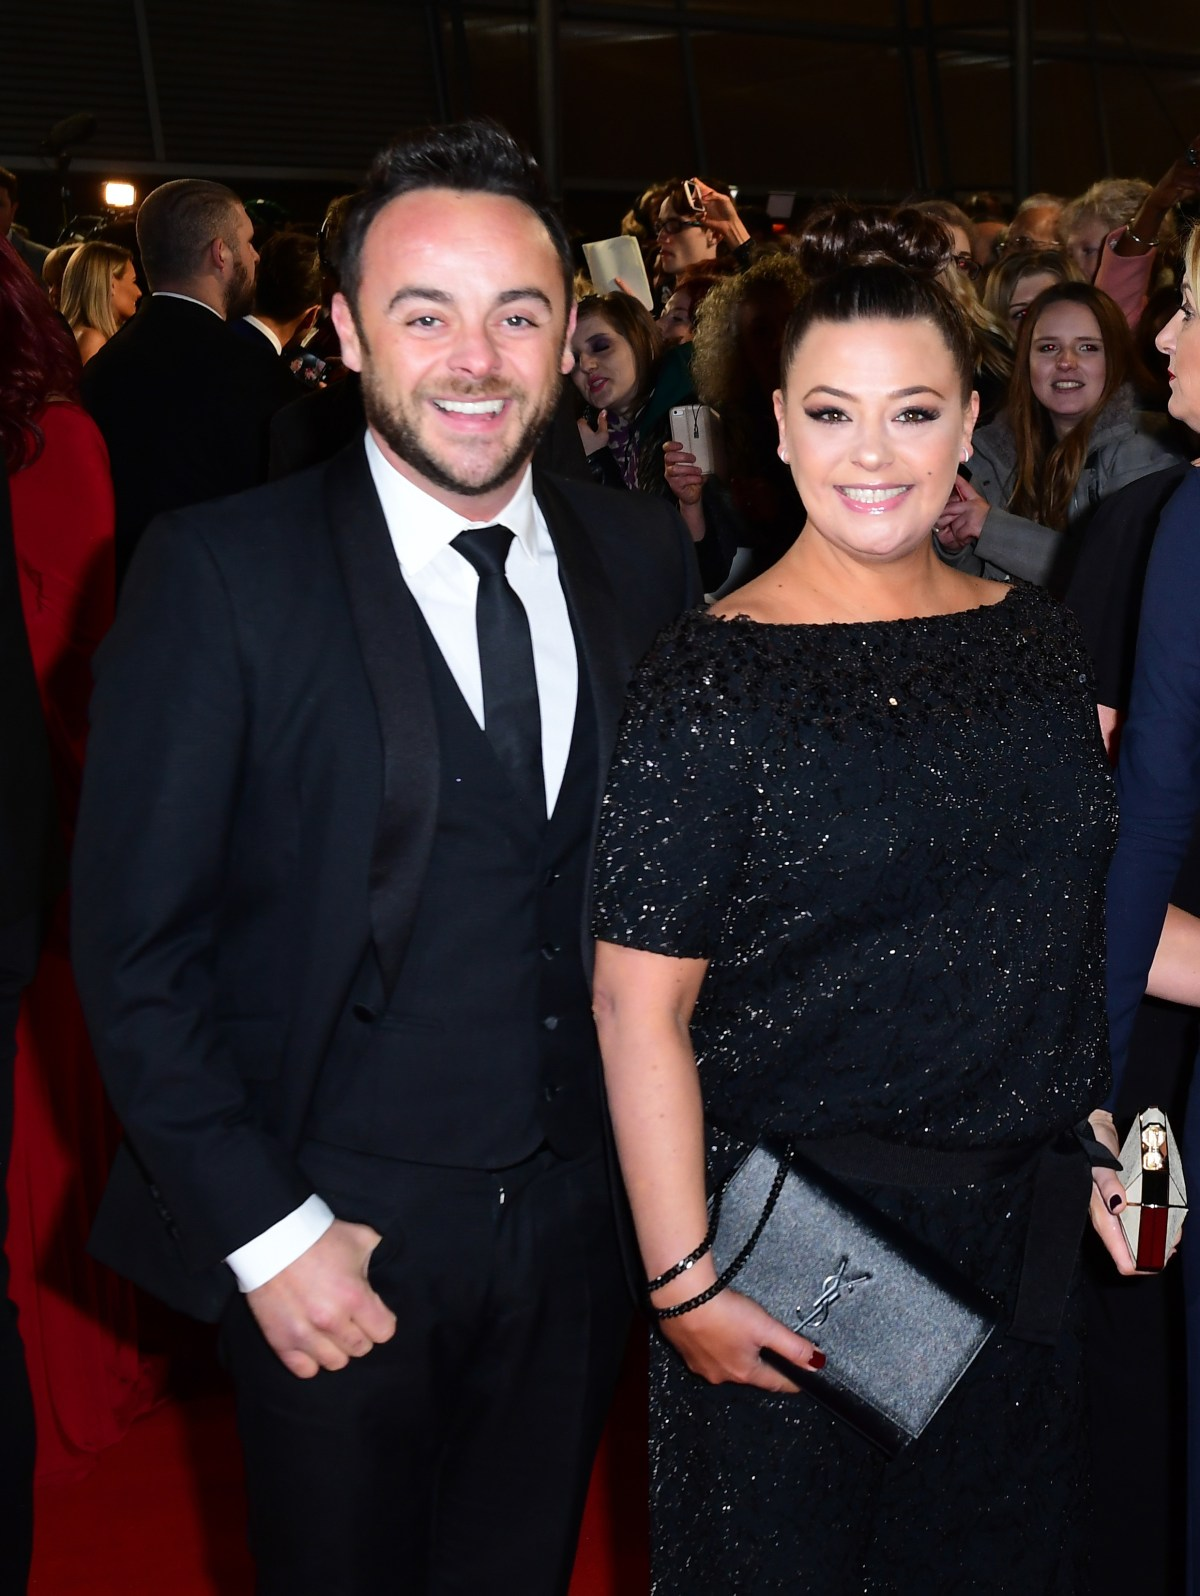 Ant McPartlin agreed to pay former wife Lisa Armstrong 36 million euros in a face-to-face meeting